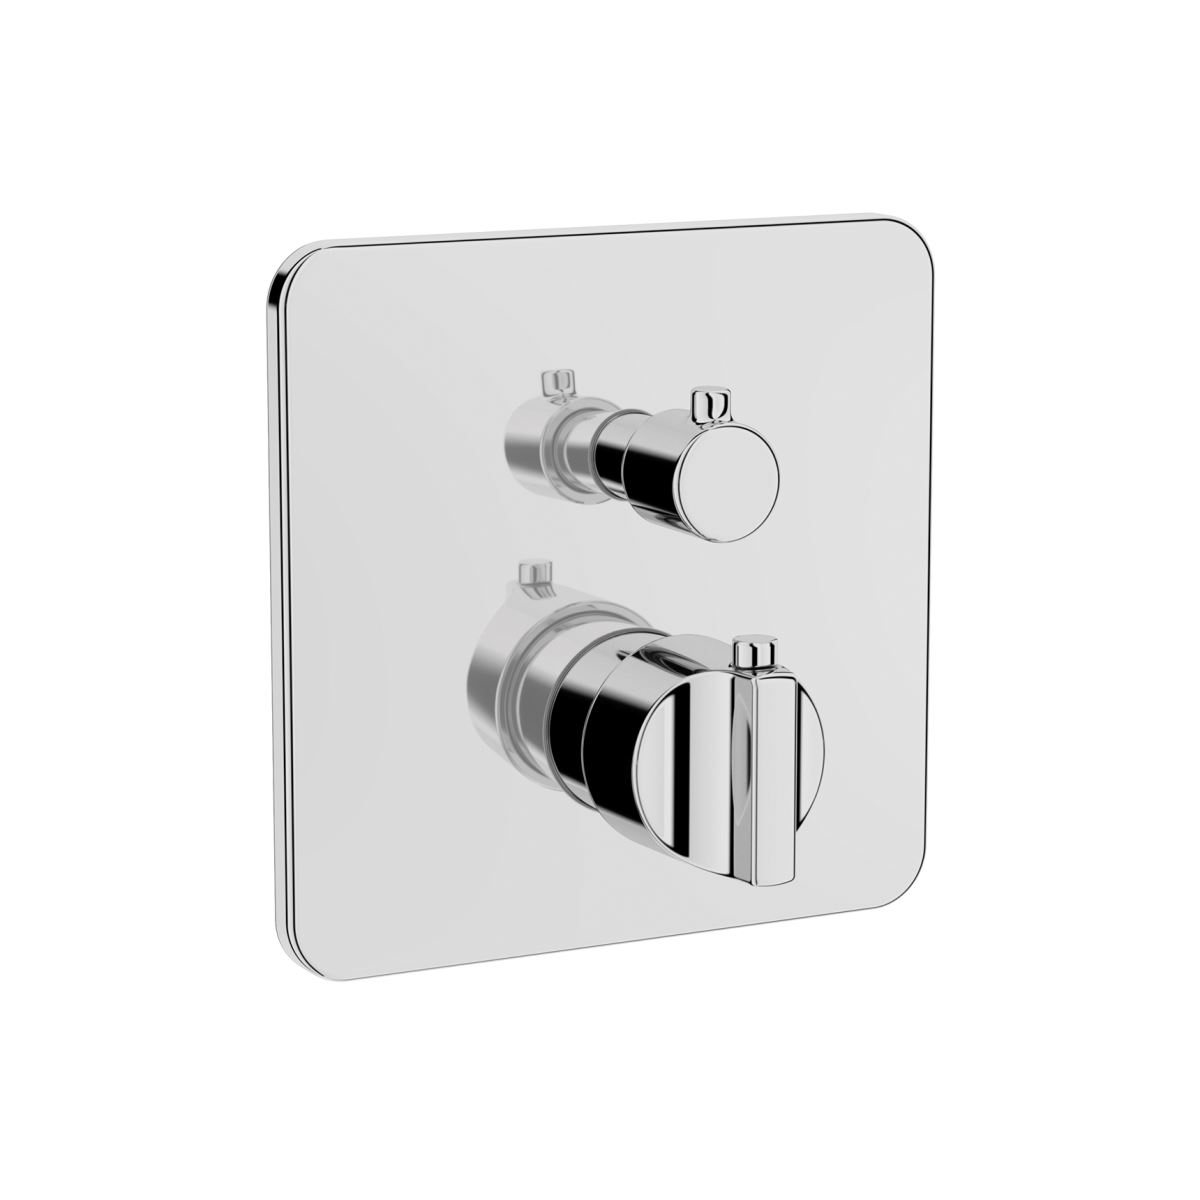 Suit Built-In Thermostatic Bath/Shower Mixer, V-Box-Exposed Part, Chrome